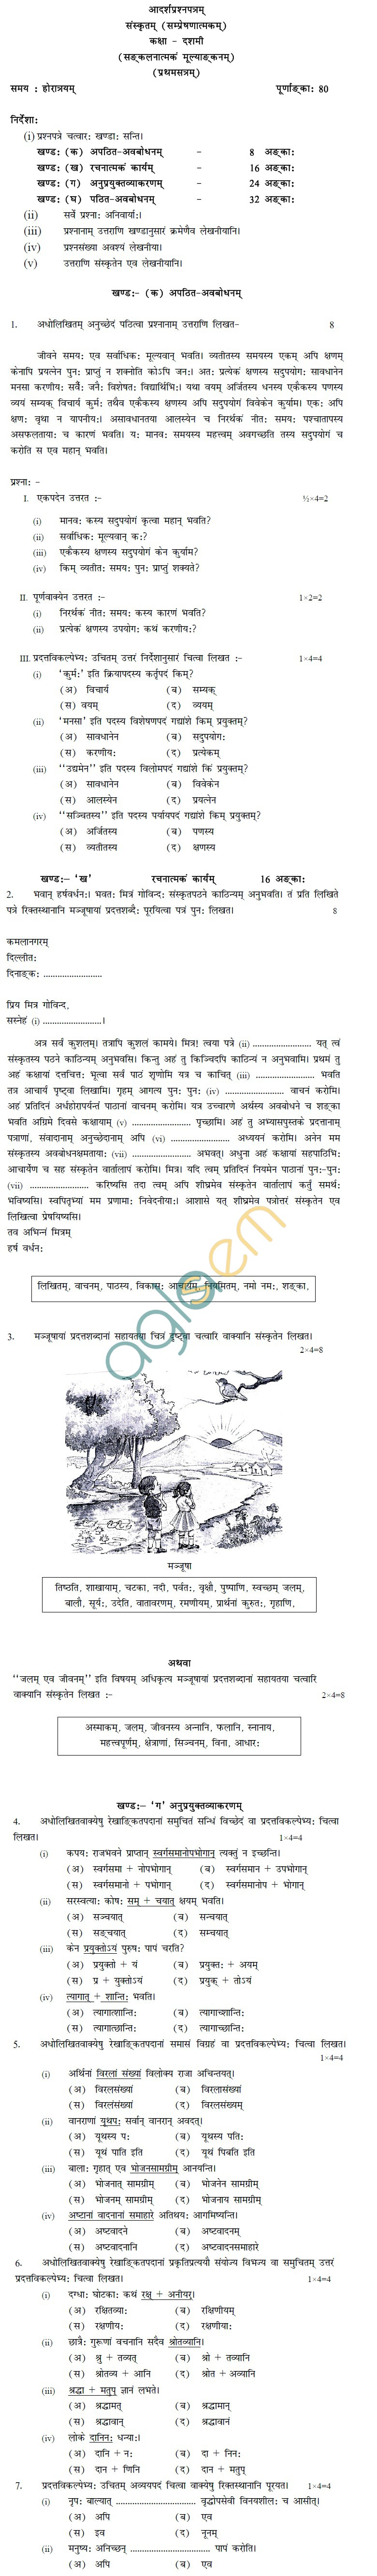 CBSE Board Exam 2013 Sample Papers (SA1) Class IX - Sanskrit